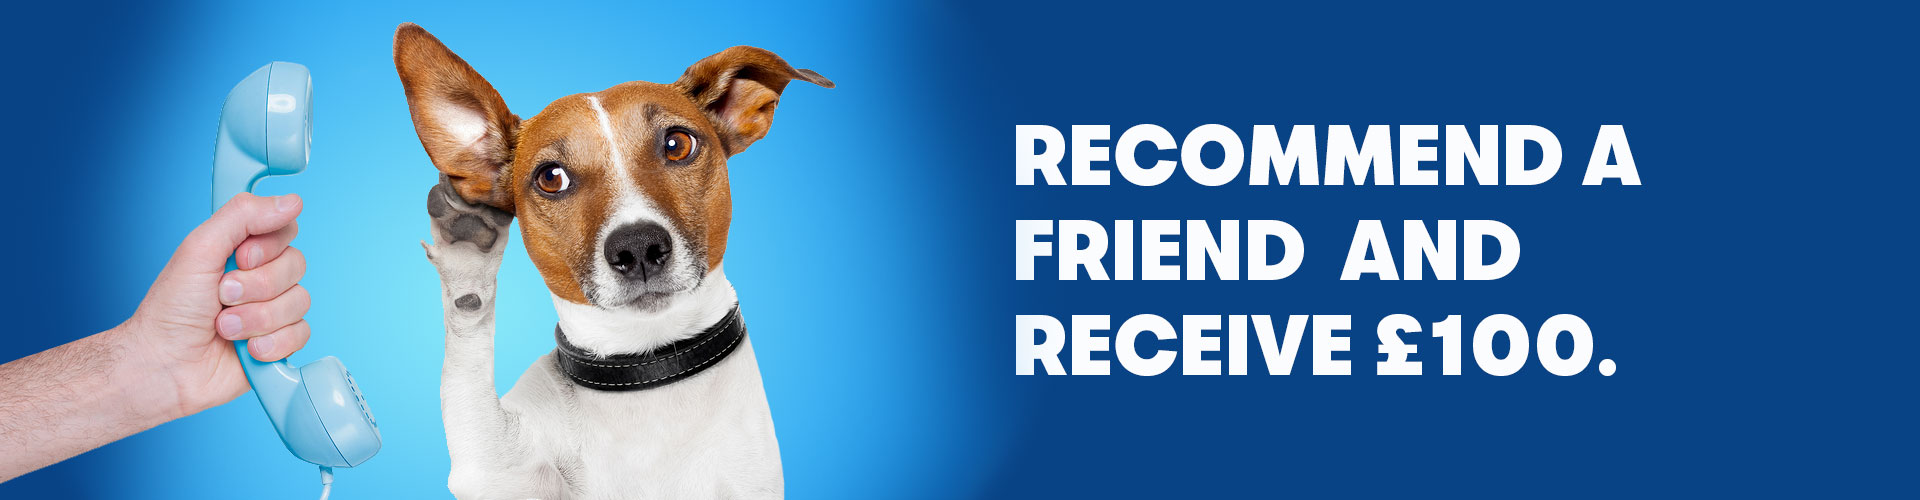 Recommend a friend and recieve £100